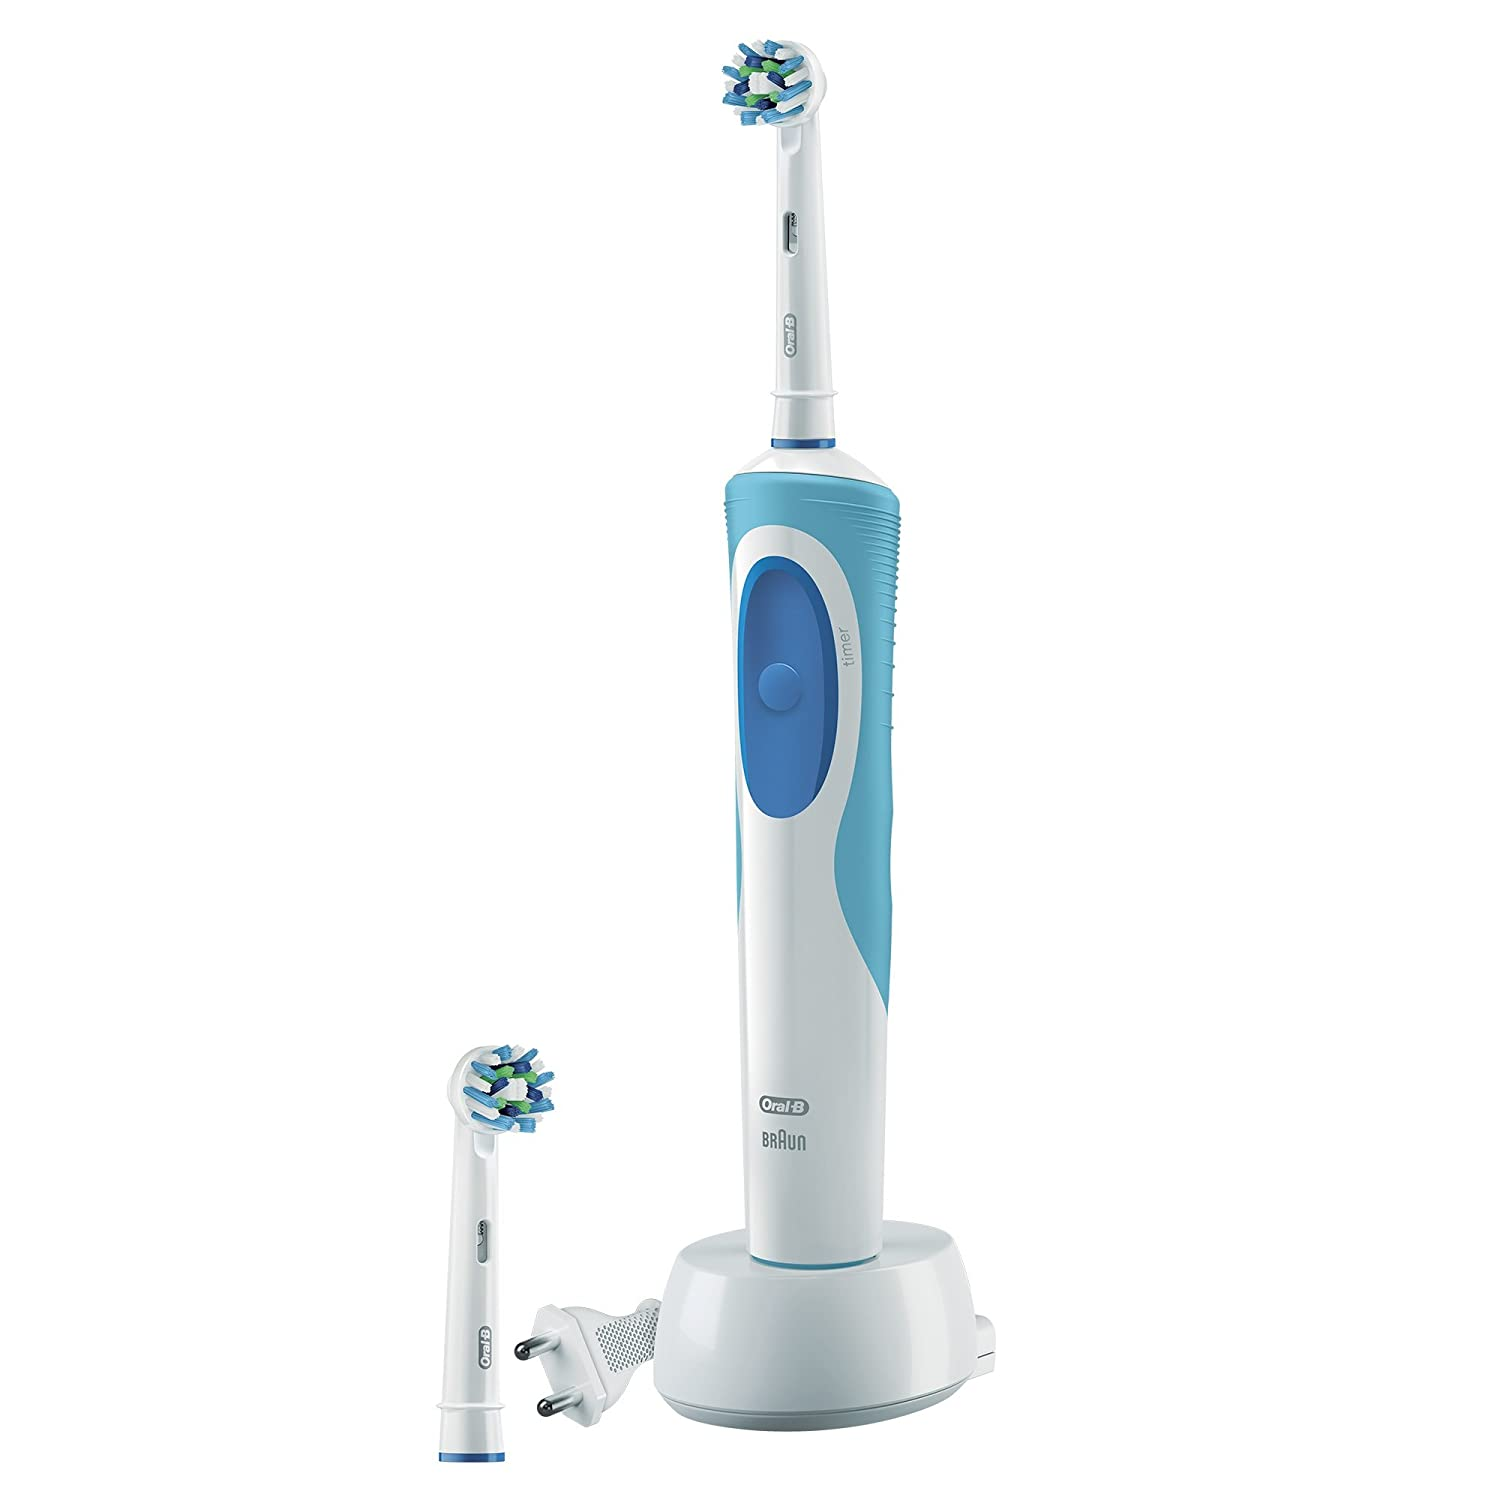 Cepillo de dientes eléctrico Oral-B Pro Vitality Cross Action, recargable, color azul: Amazon.es: Salud y cuidado personal